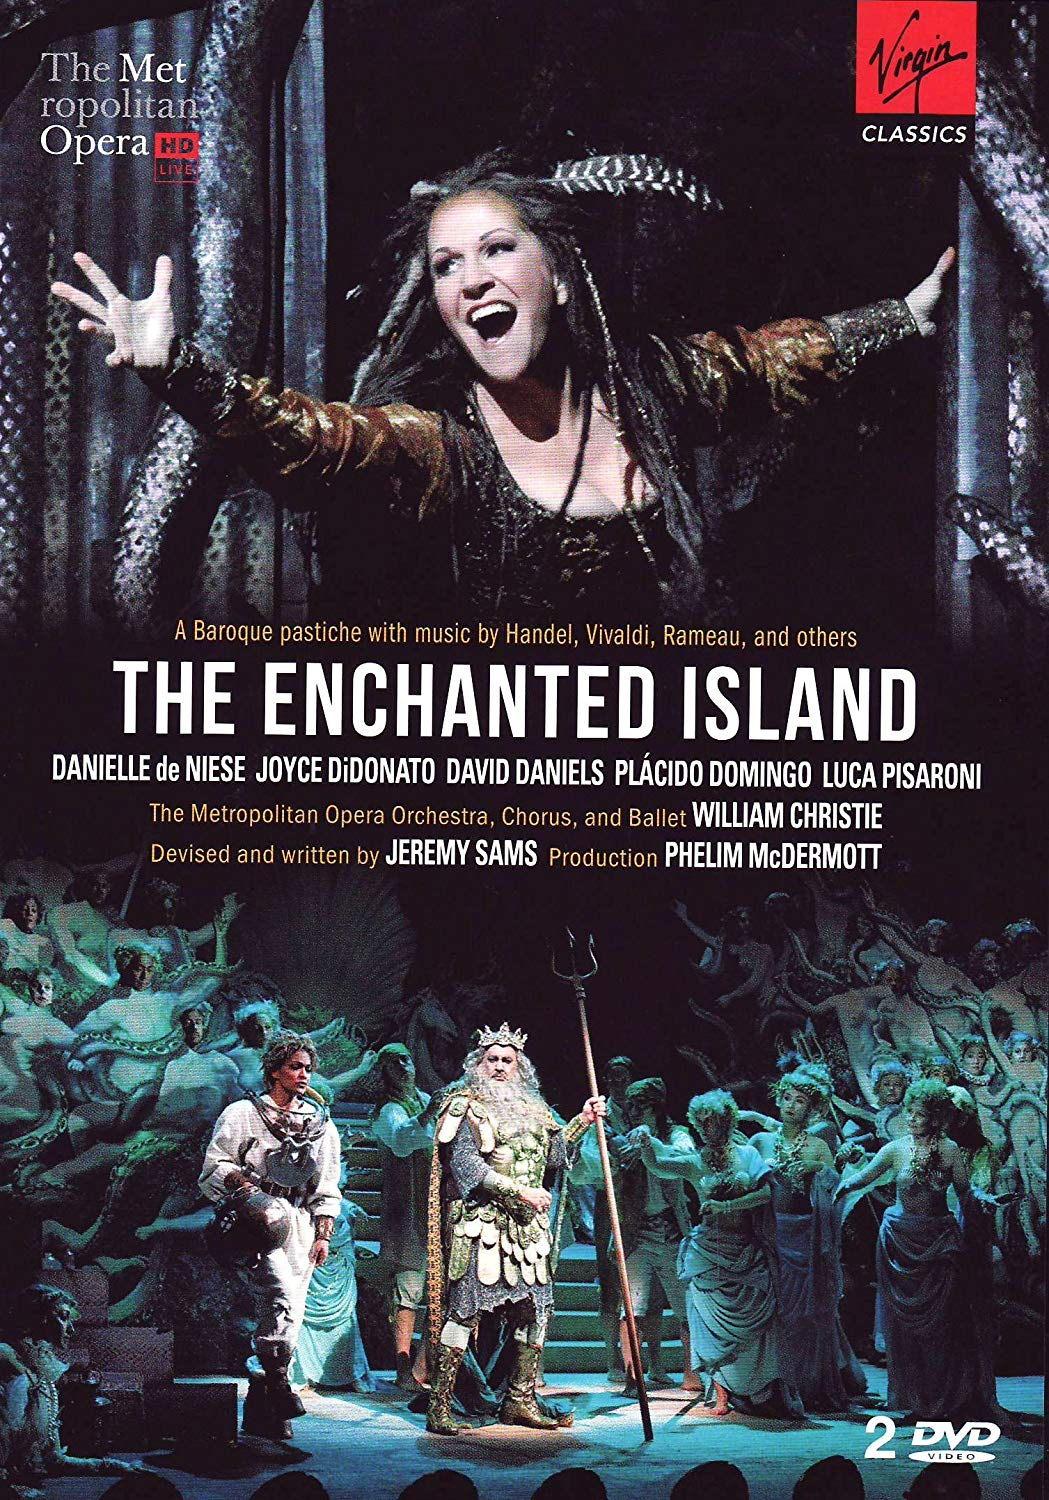 The Enchanted Island DVD